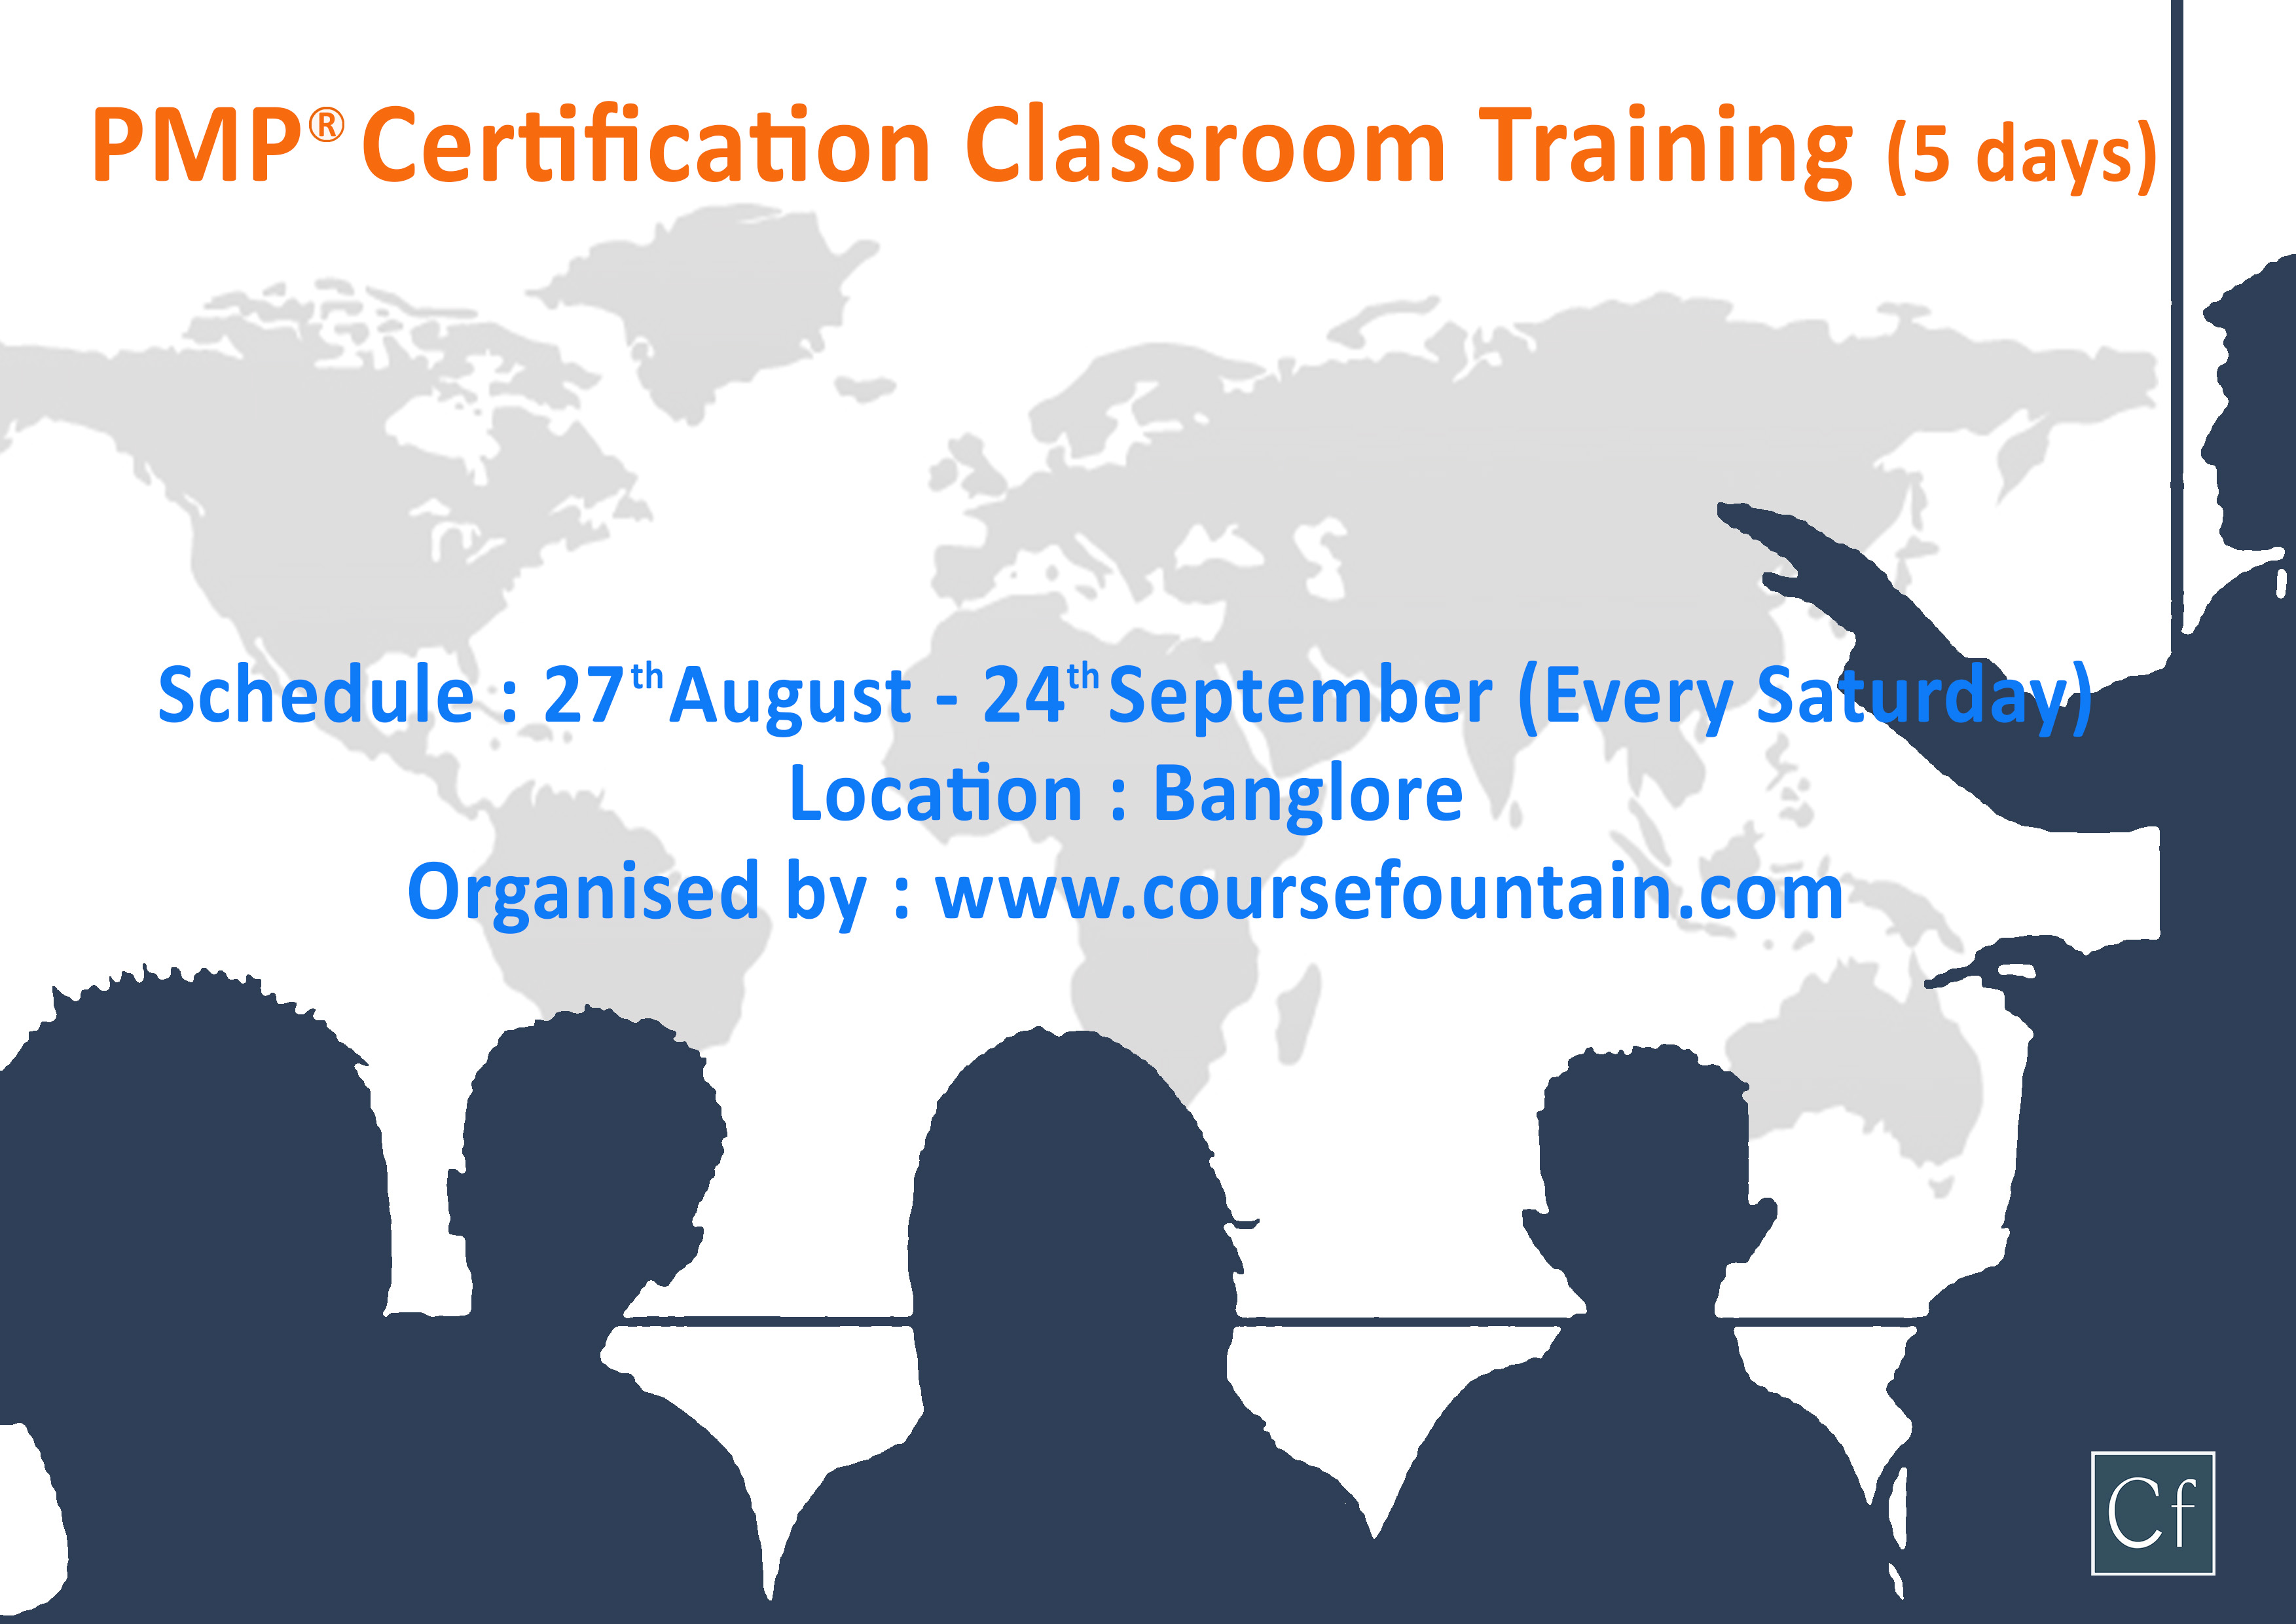 Book 5 Day Classroom Training For Pmp Certification Exam Tickets